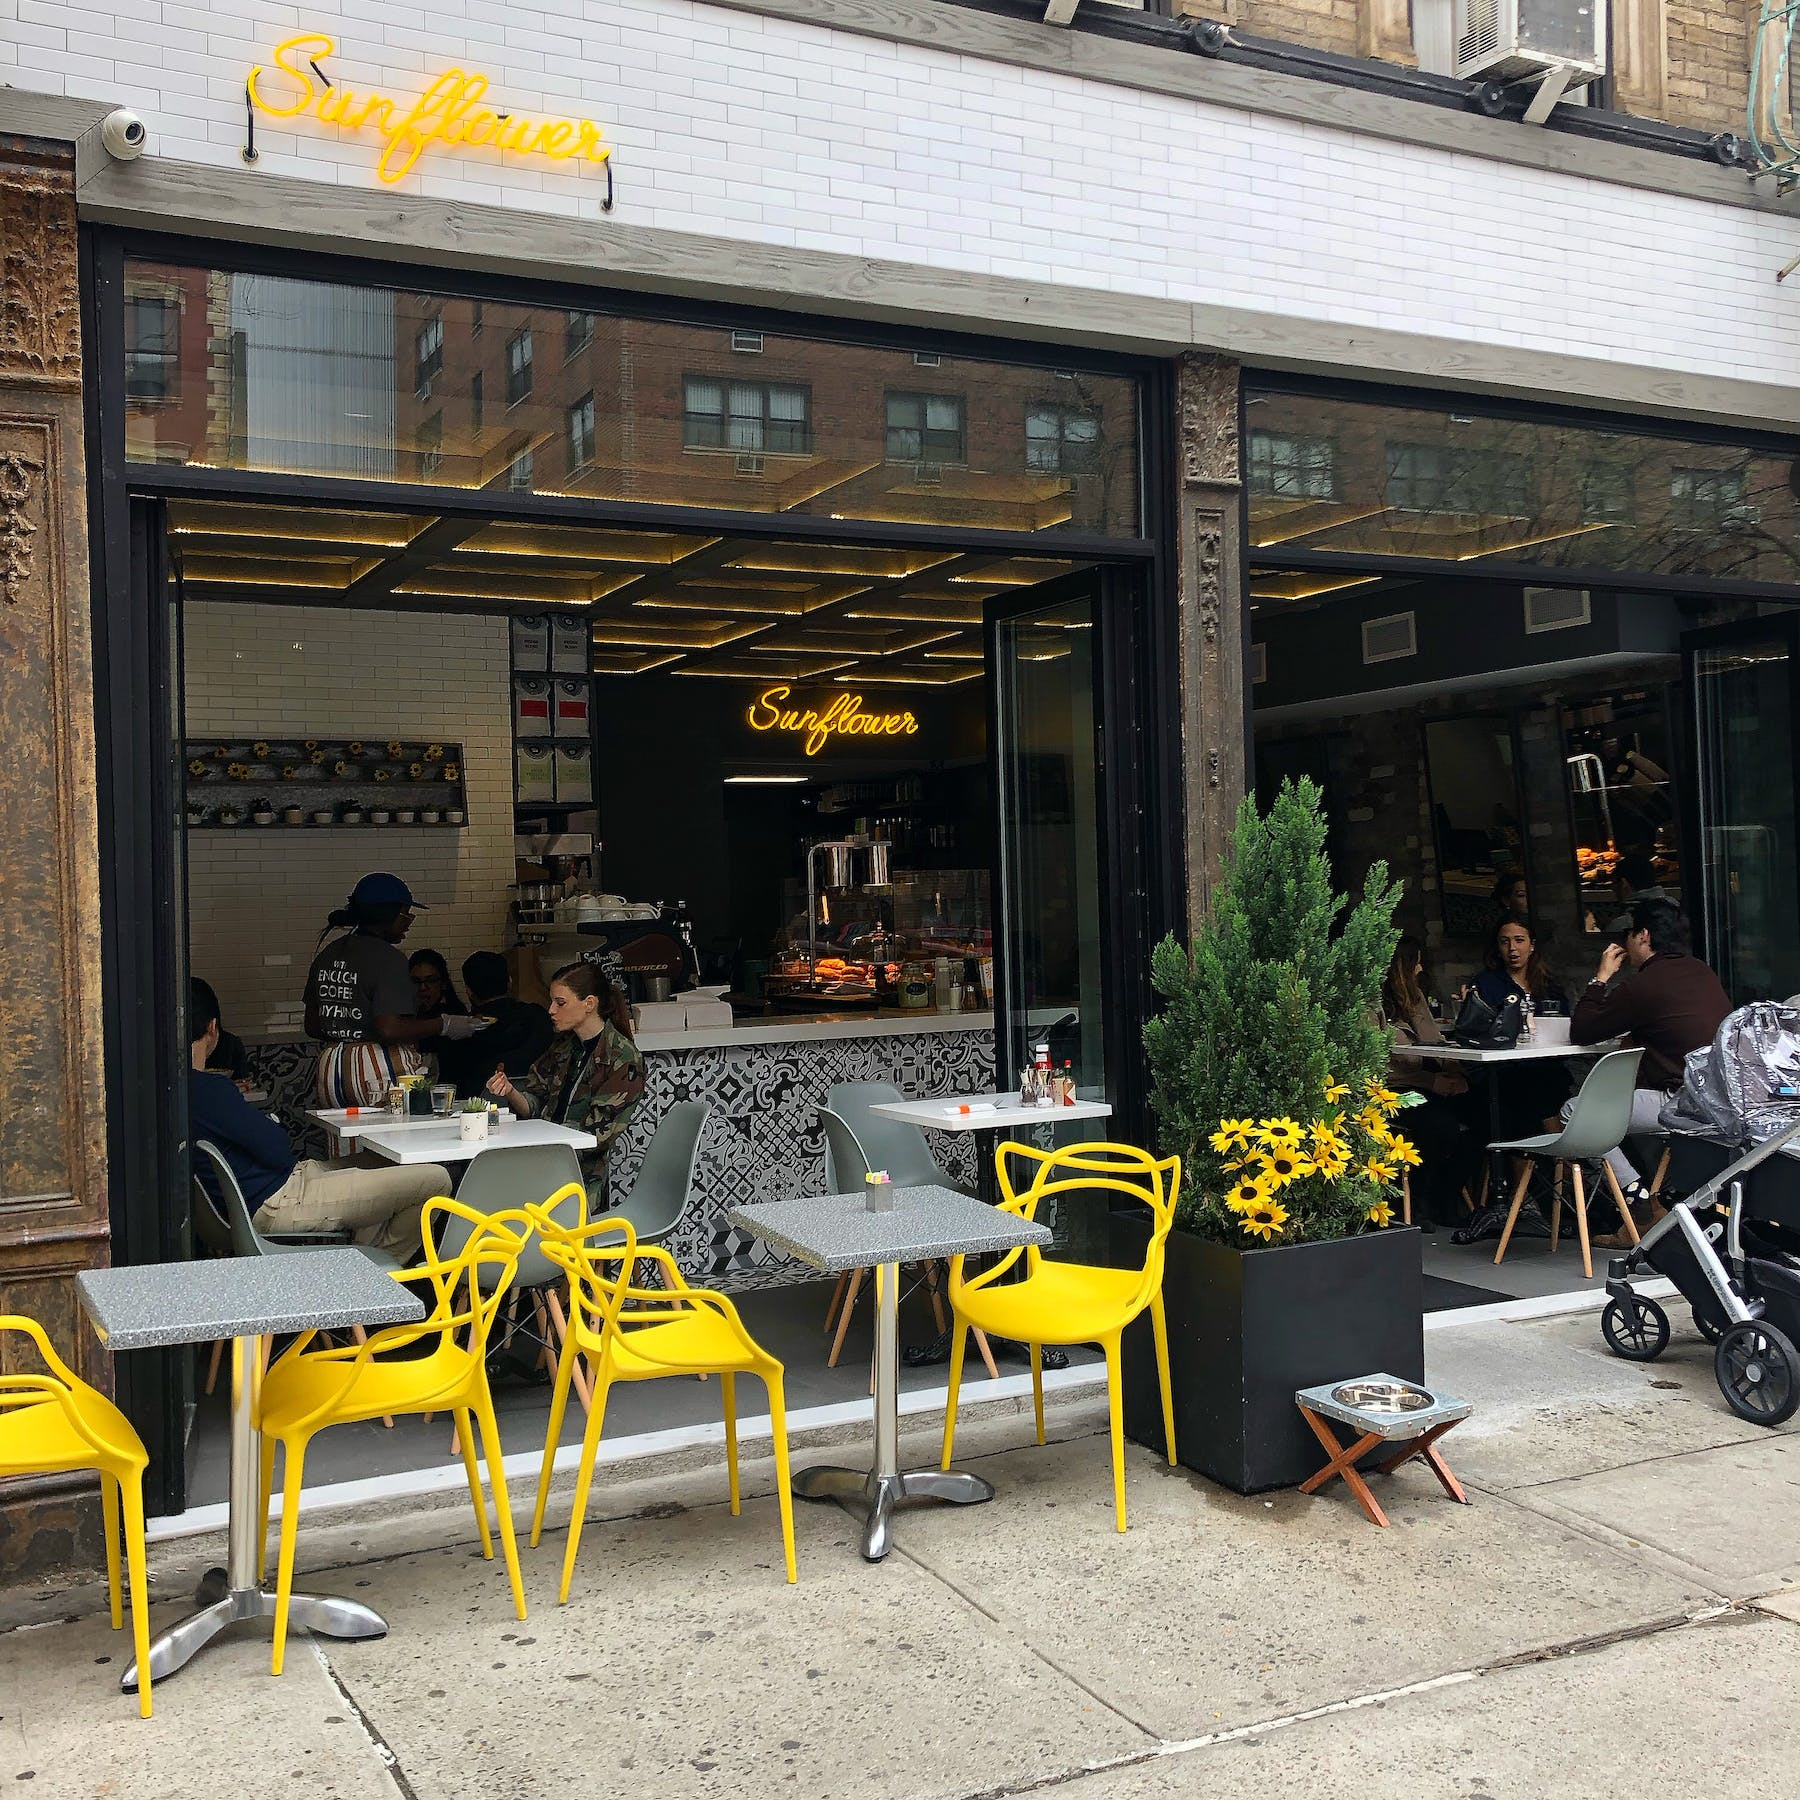 a group of people sitting at a table in front of a yellow building